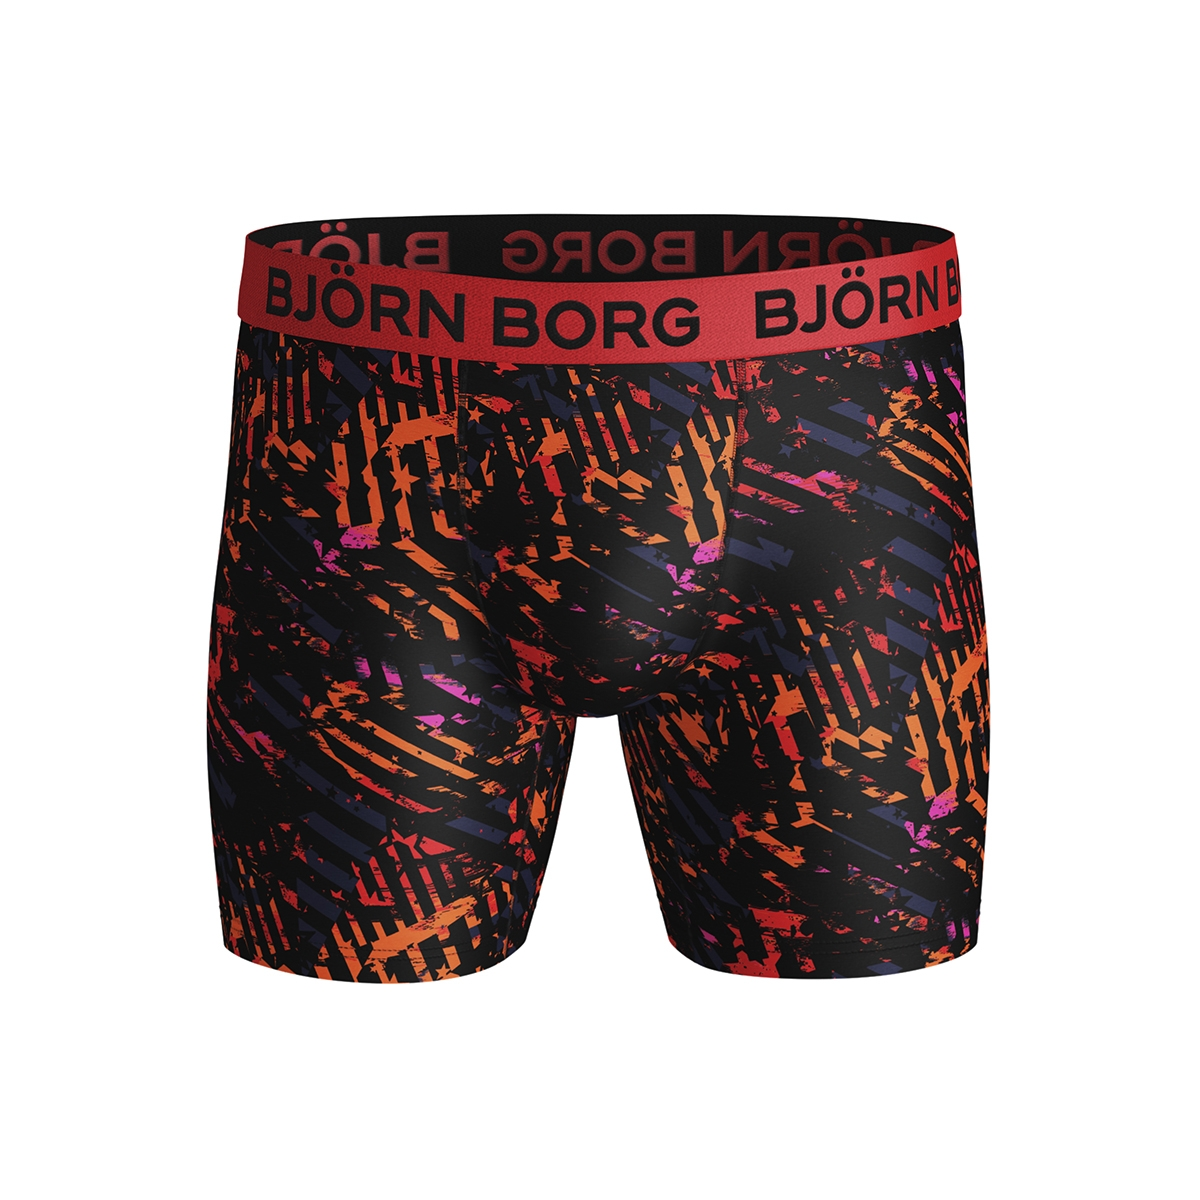 shorts per bb star 1941 1186 bjorn borg ondergoed 90651 black beauty